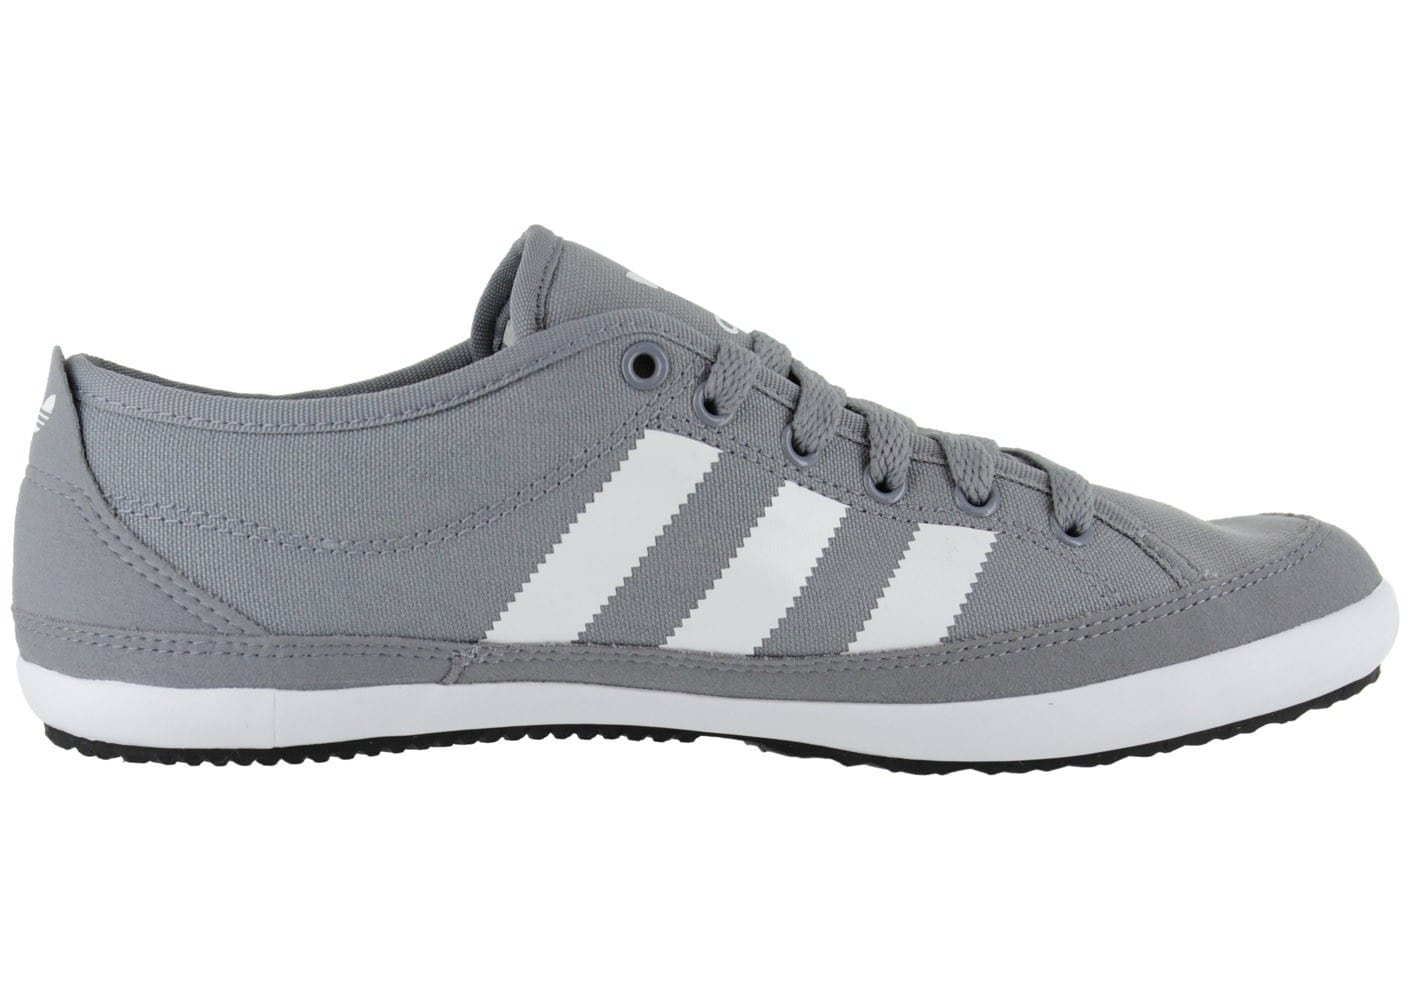 adidas nizza grise chaussures homme chausport. Black Bedroom Furniture Sets. Home Design Ideas